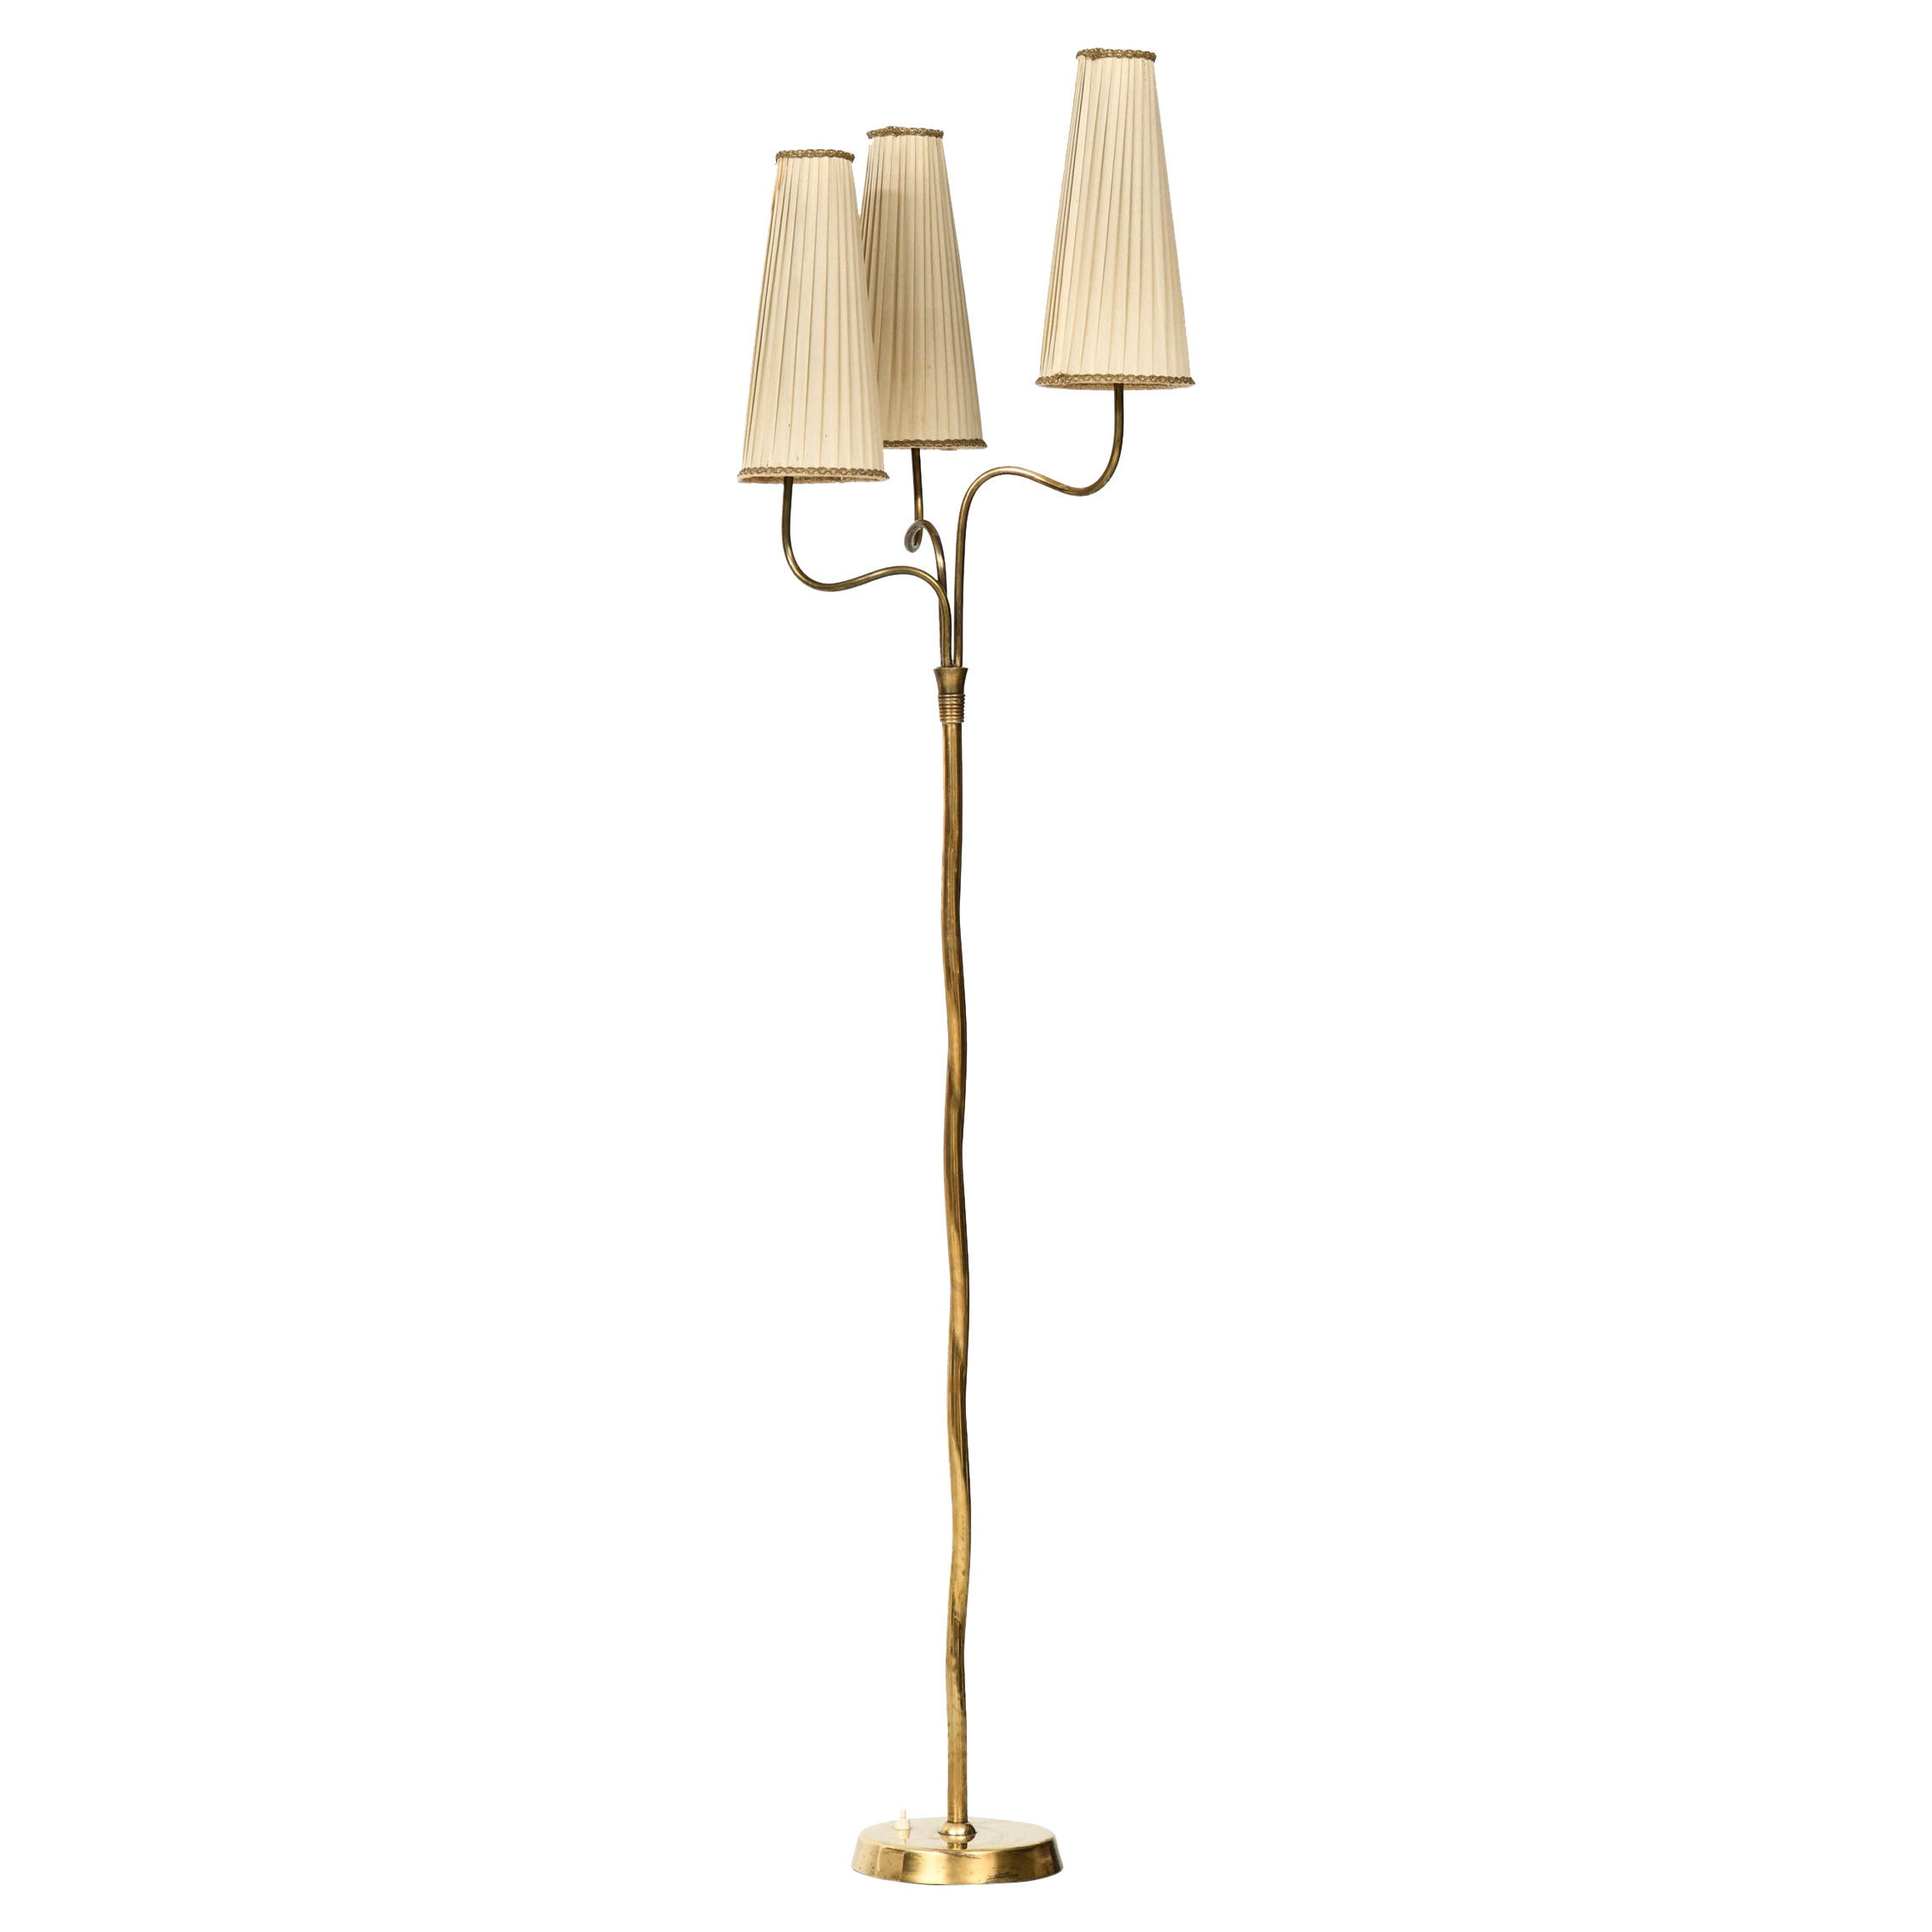 Floor Lamp Produced by Itsu in Finland